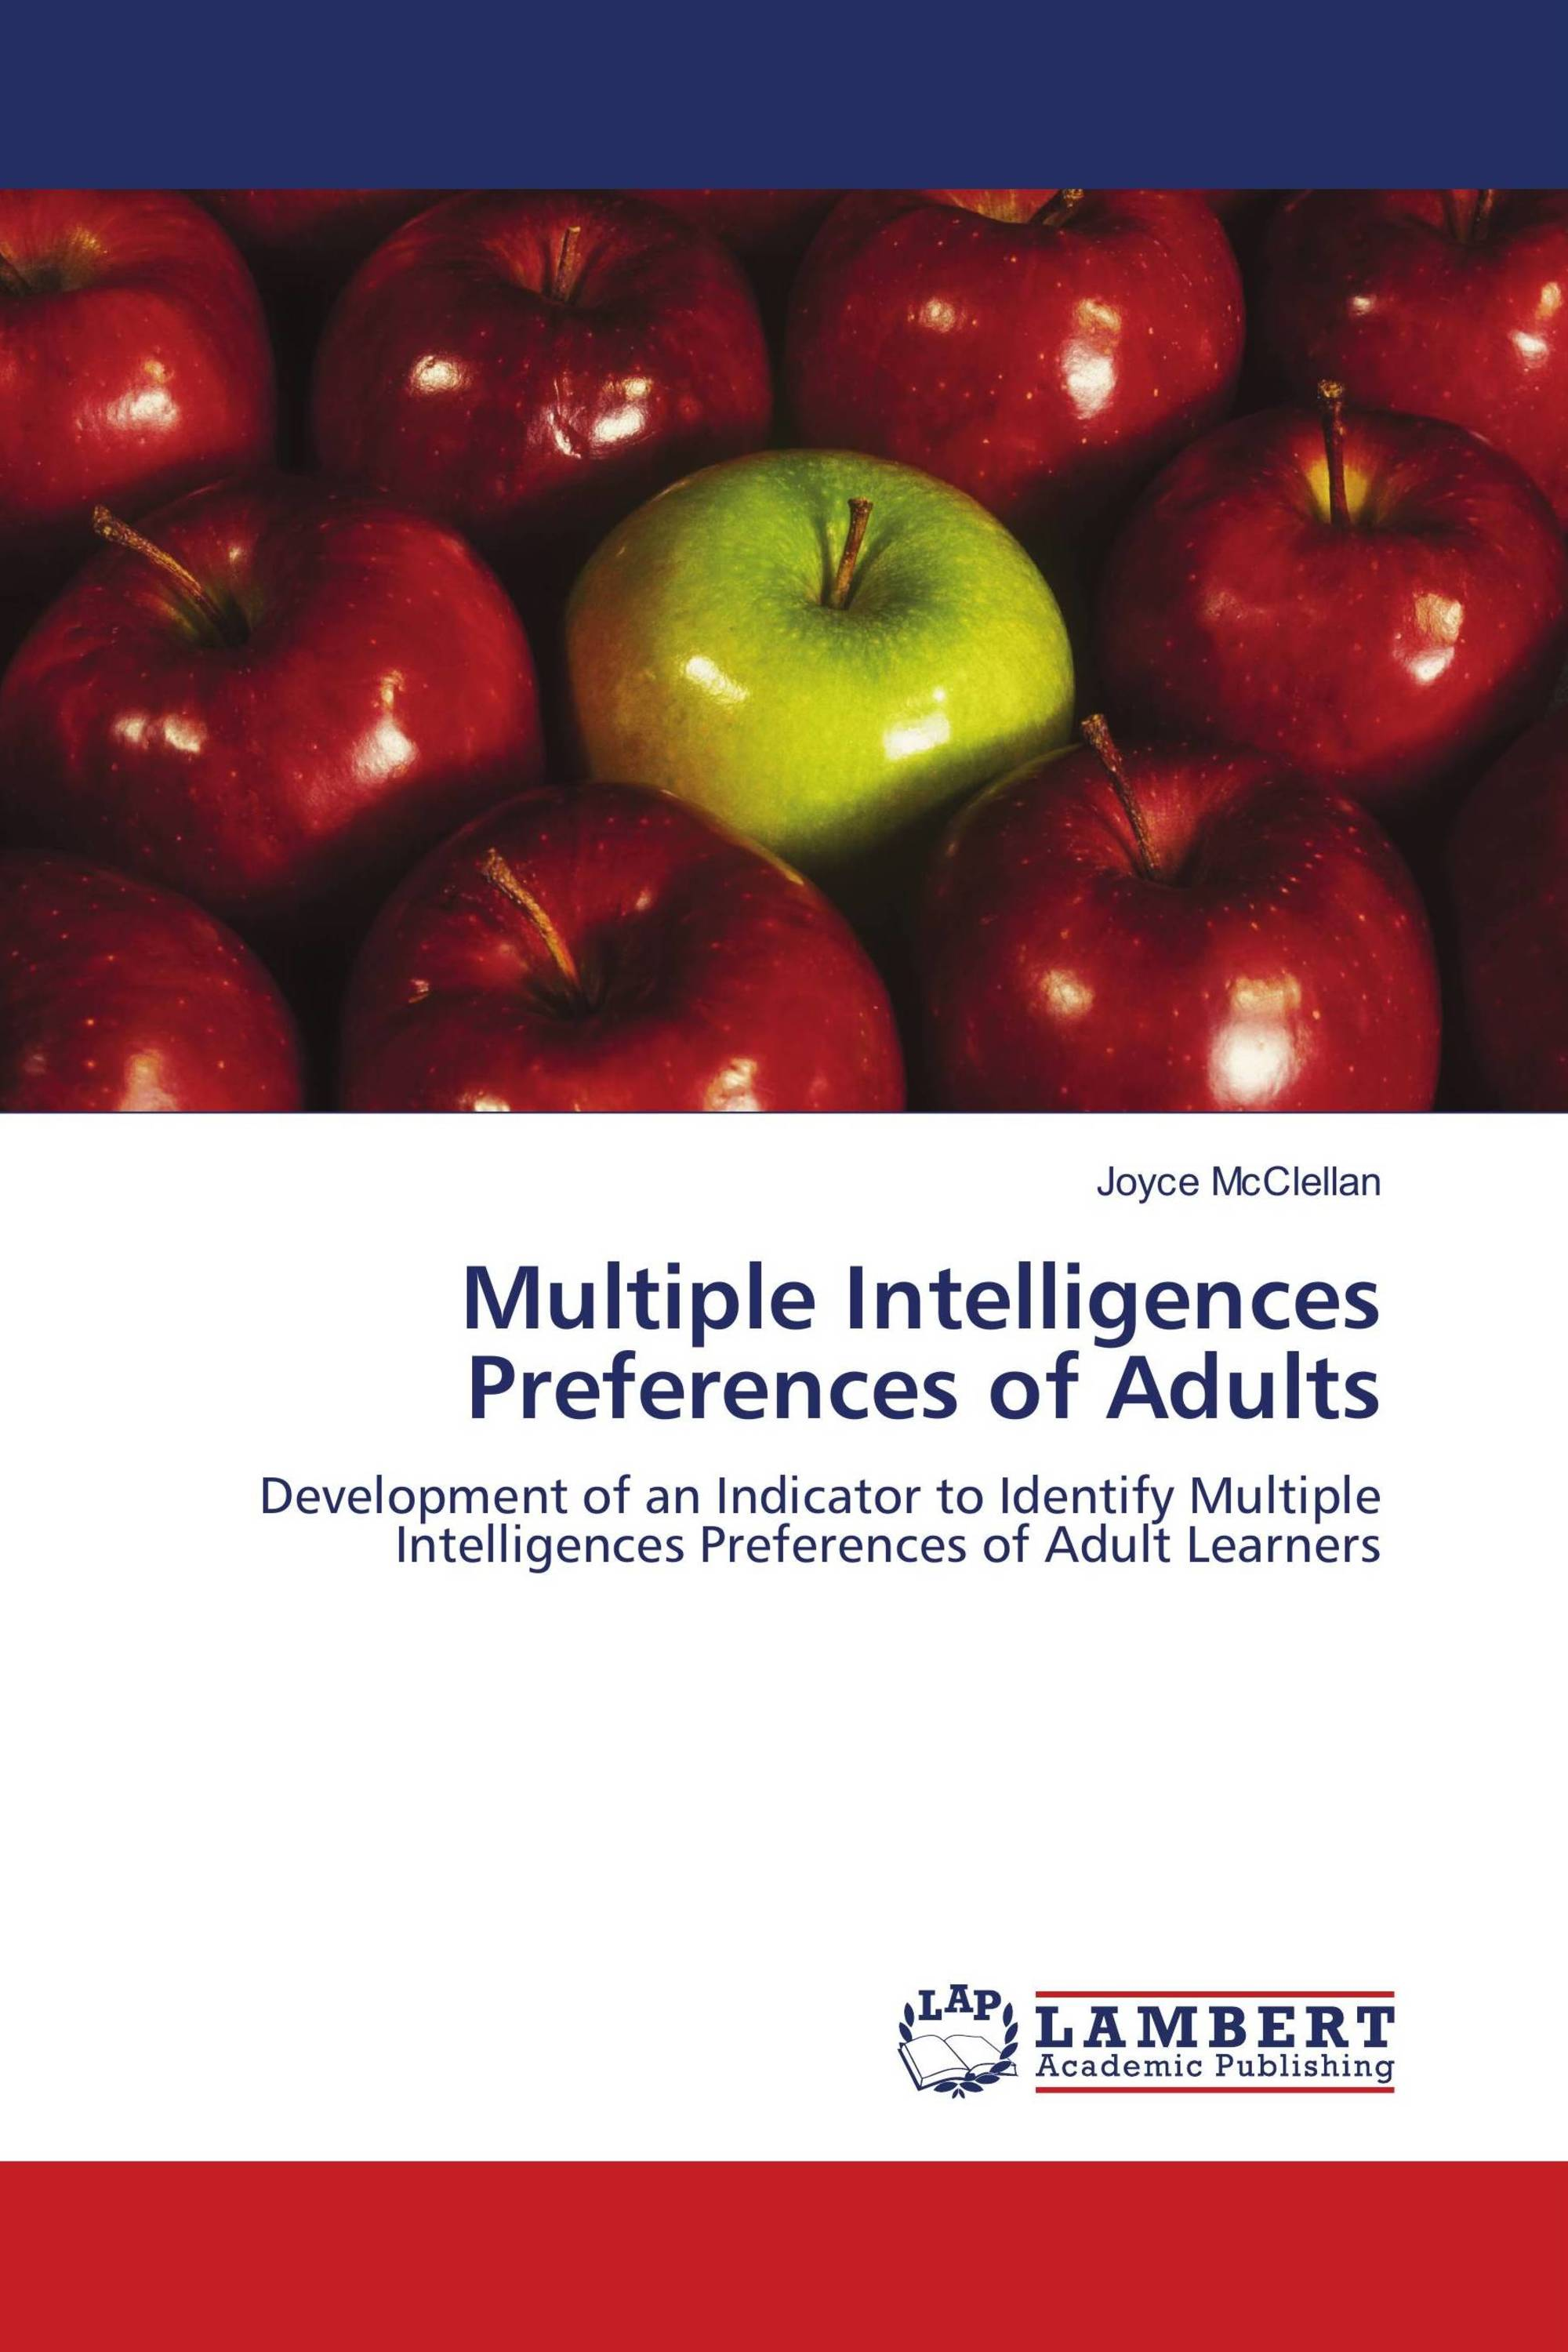 Multiple Intelligences Preferences of Adults